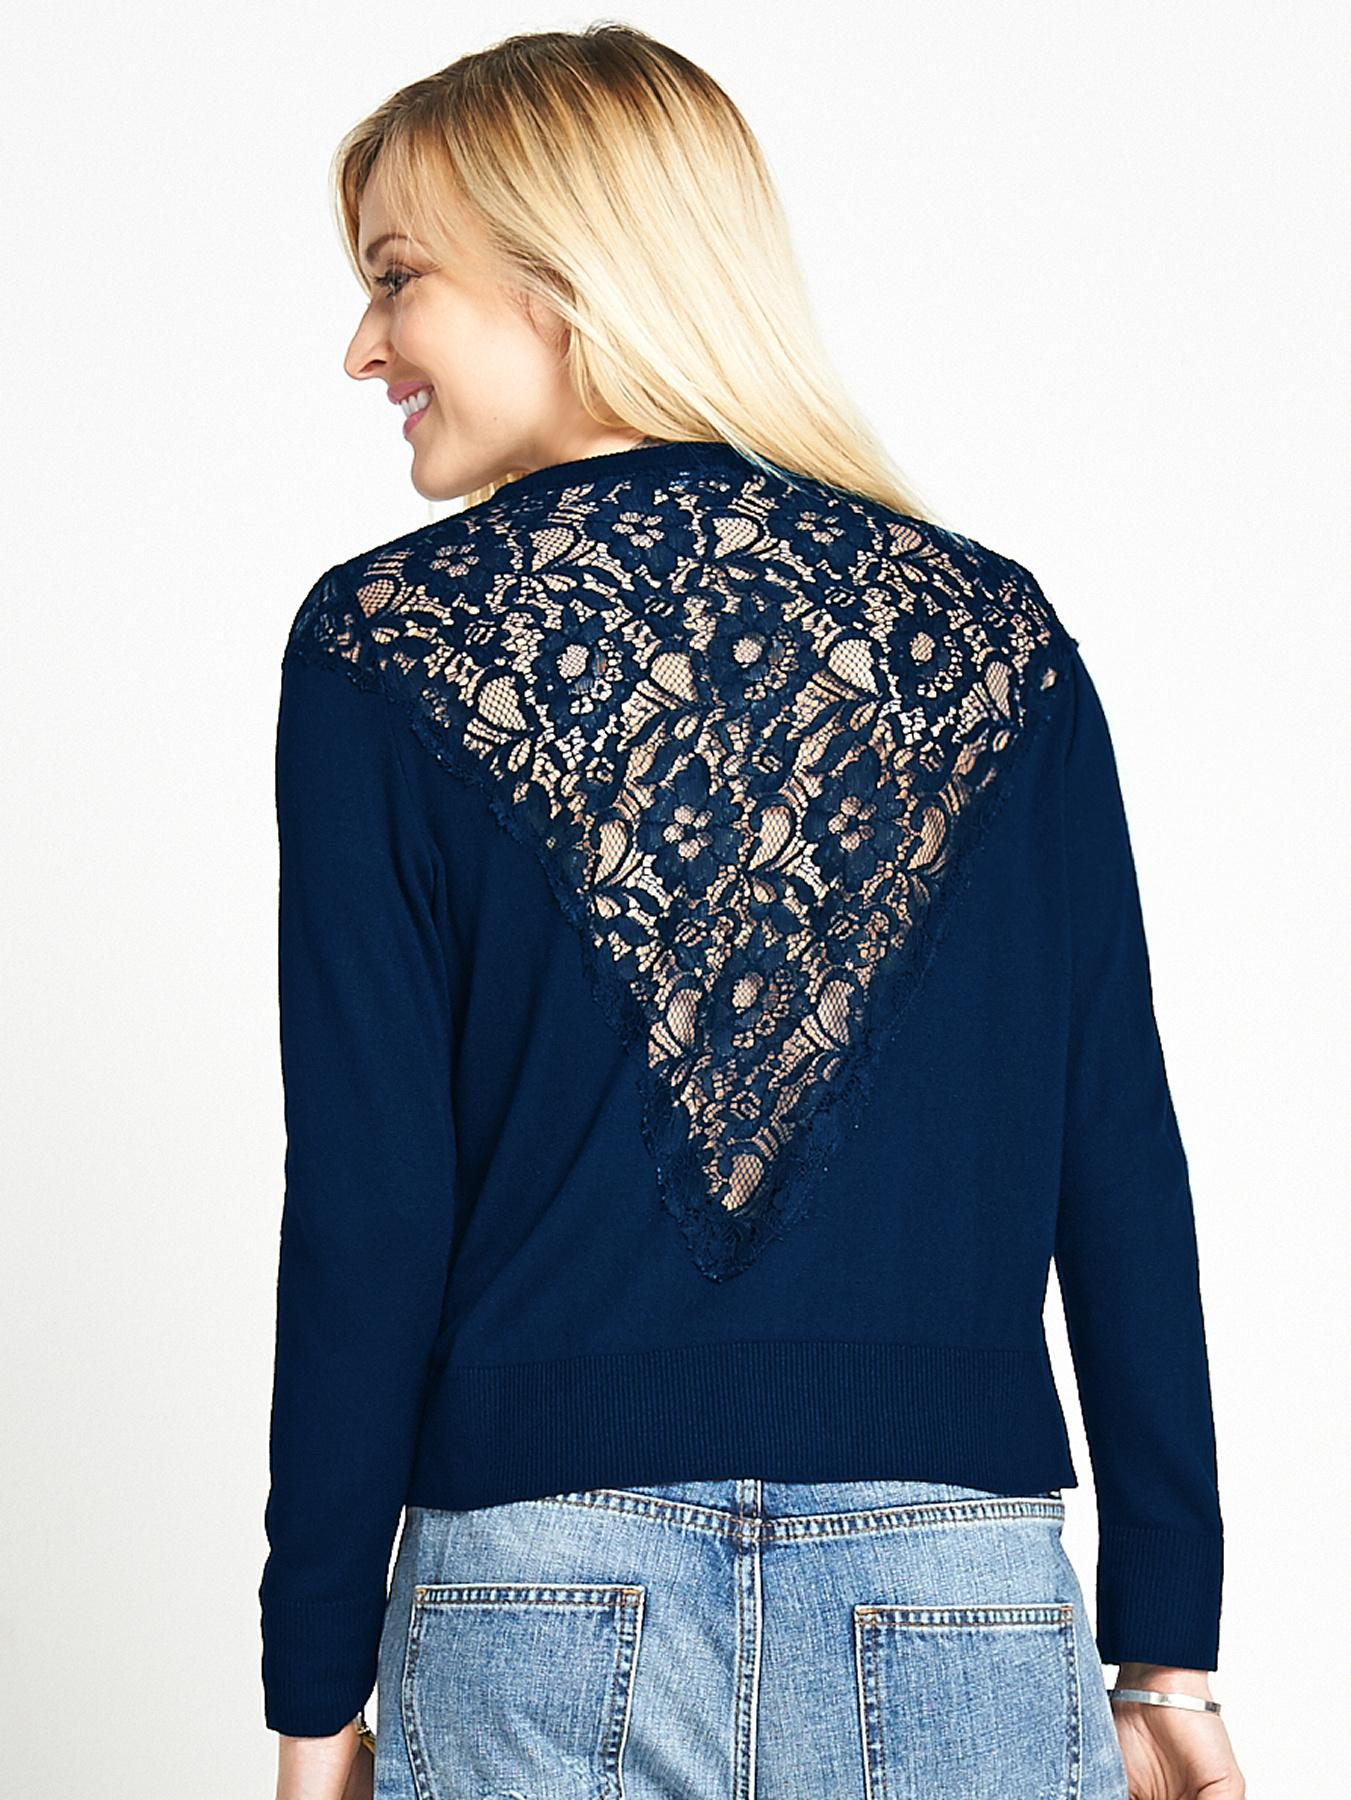 Fearne Cotton Lace Back Jumper - Navy, Navy